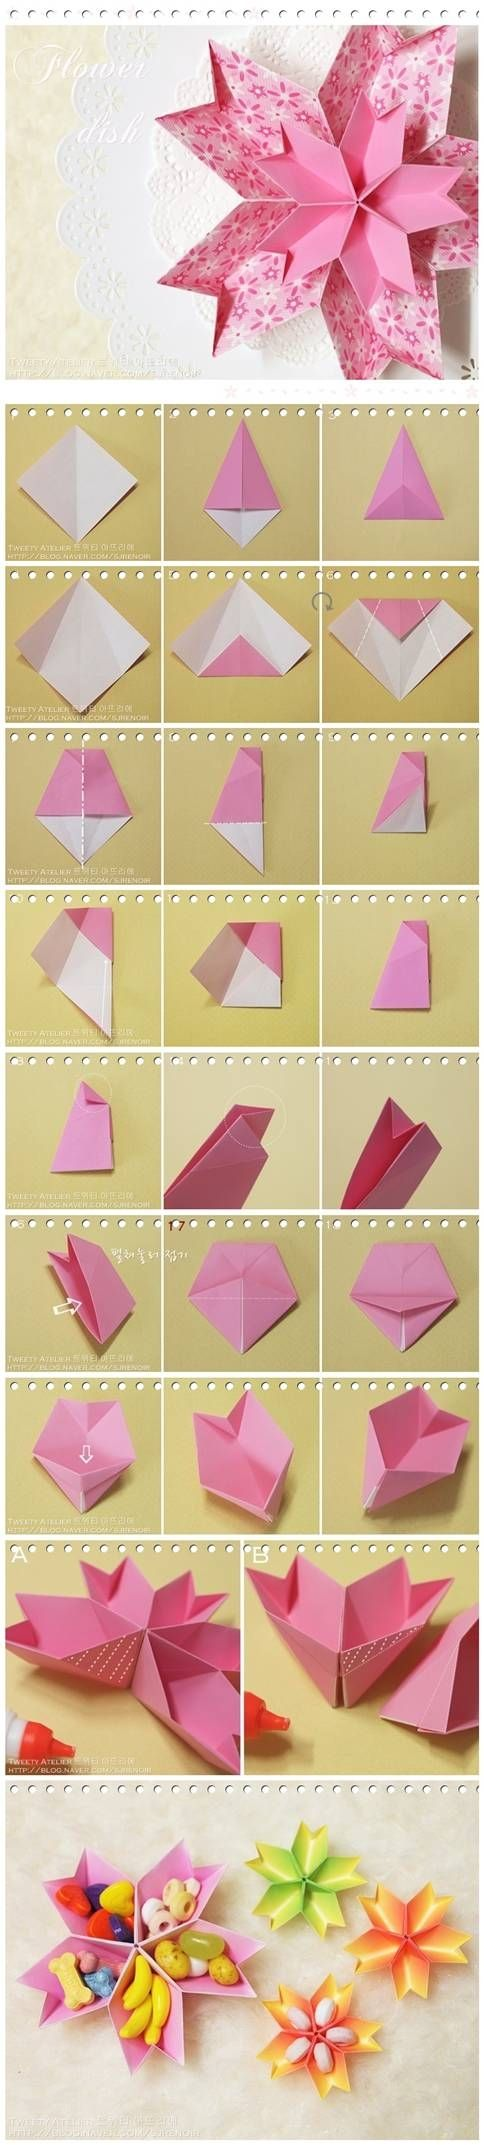 DIY Paper Flower Dish